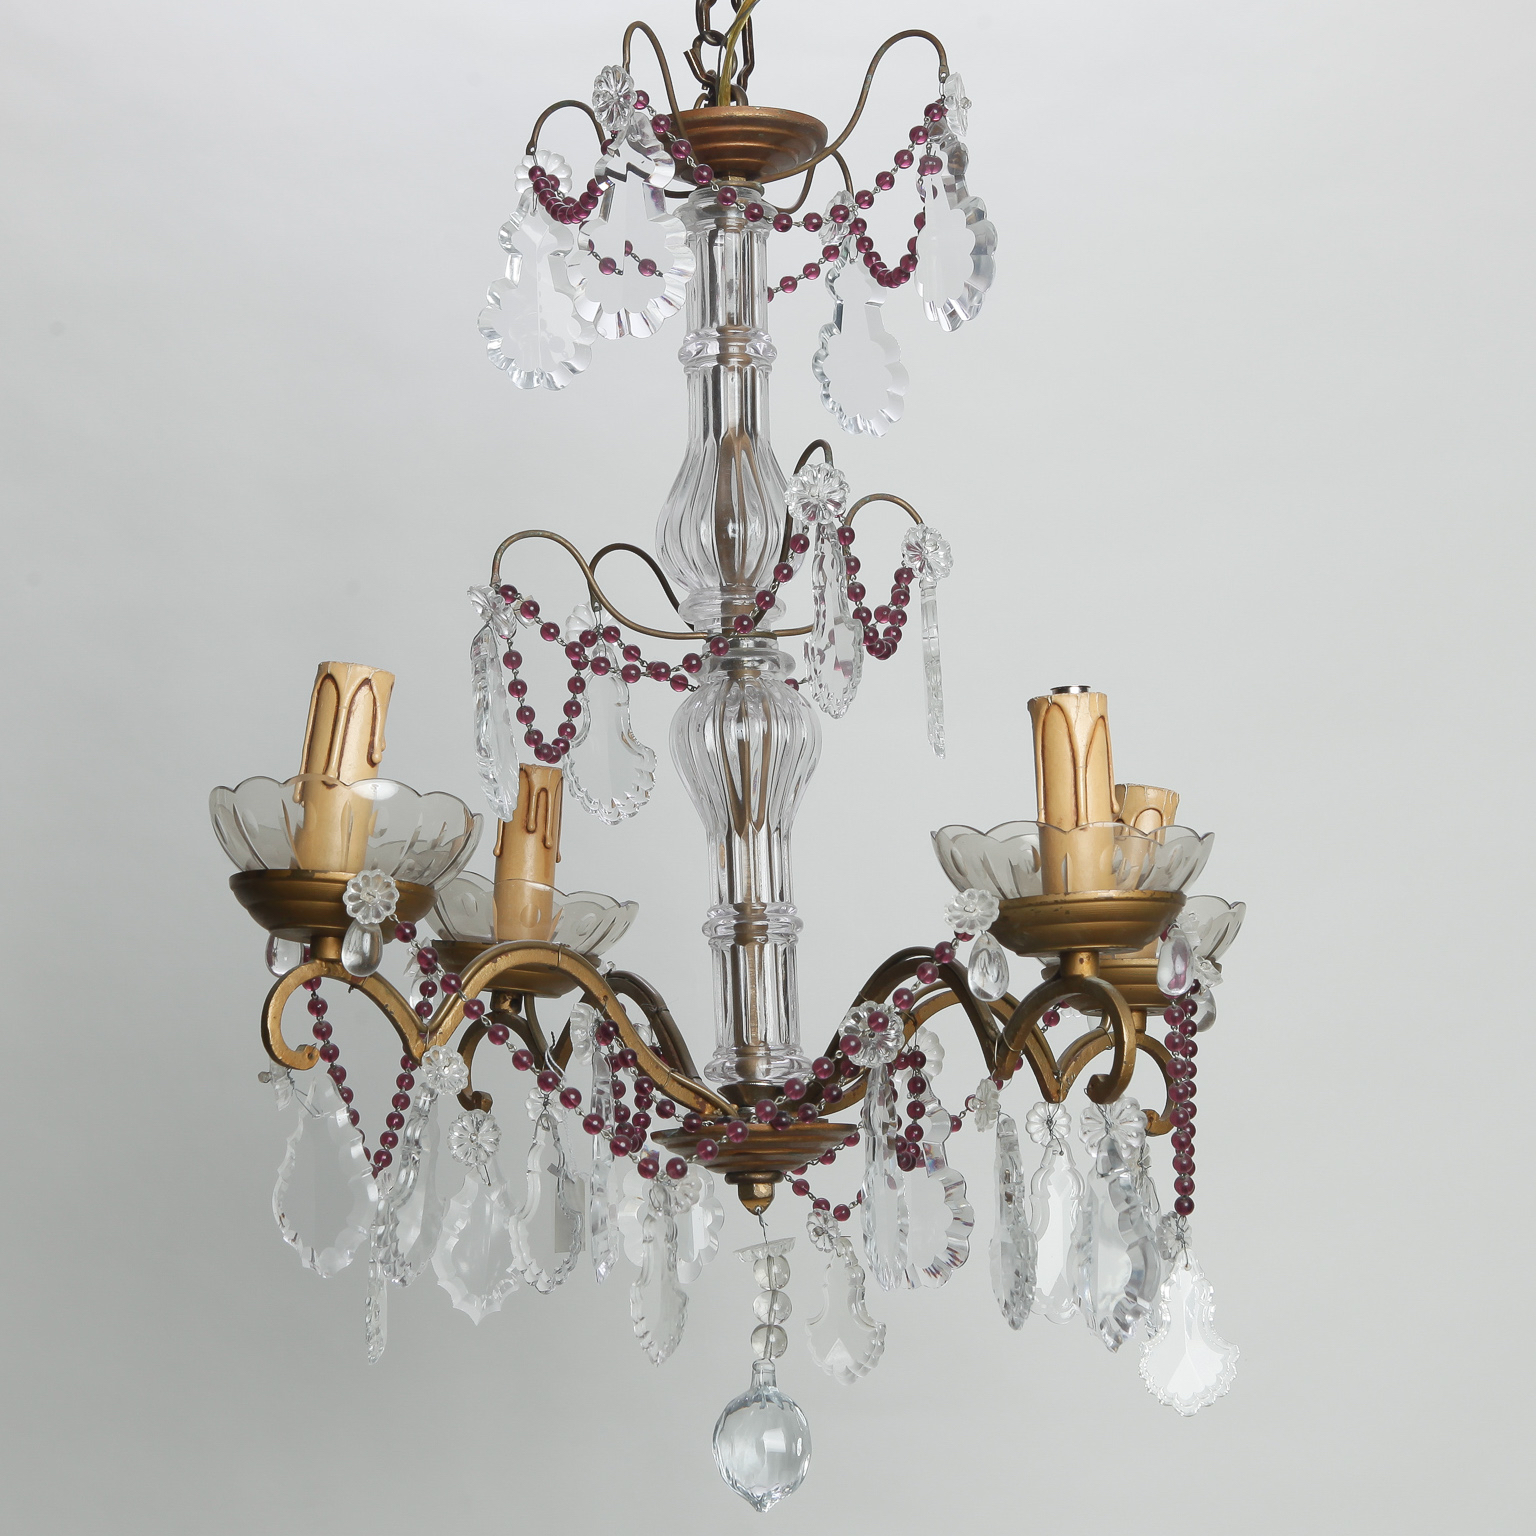 Four Arm French Chandelier With Amethyst Beads And